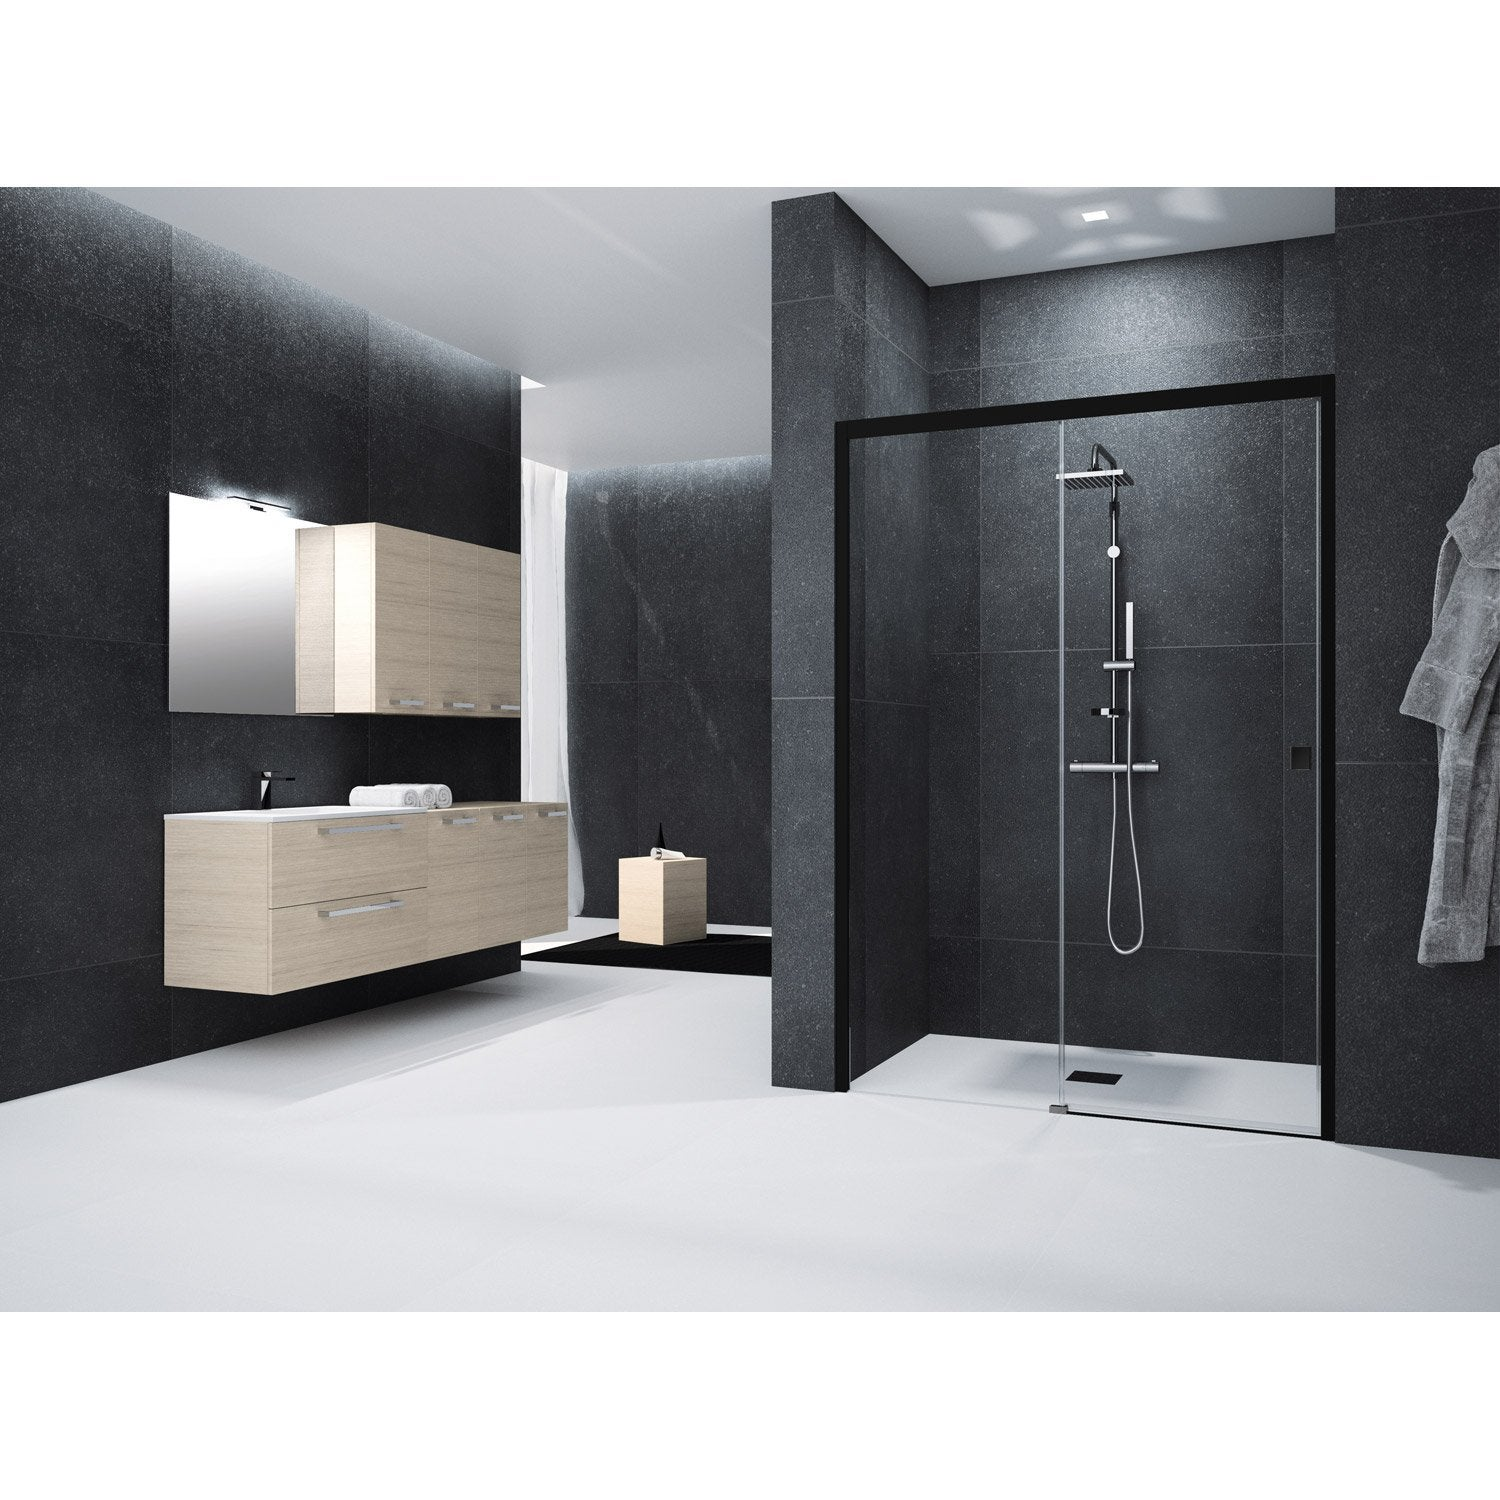 porte de douche coulissante 140 cm transparent neo. Black Bedroom Furniture Sets. Home Design Ideas